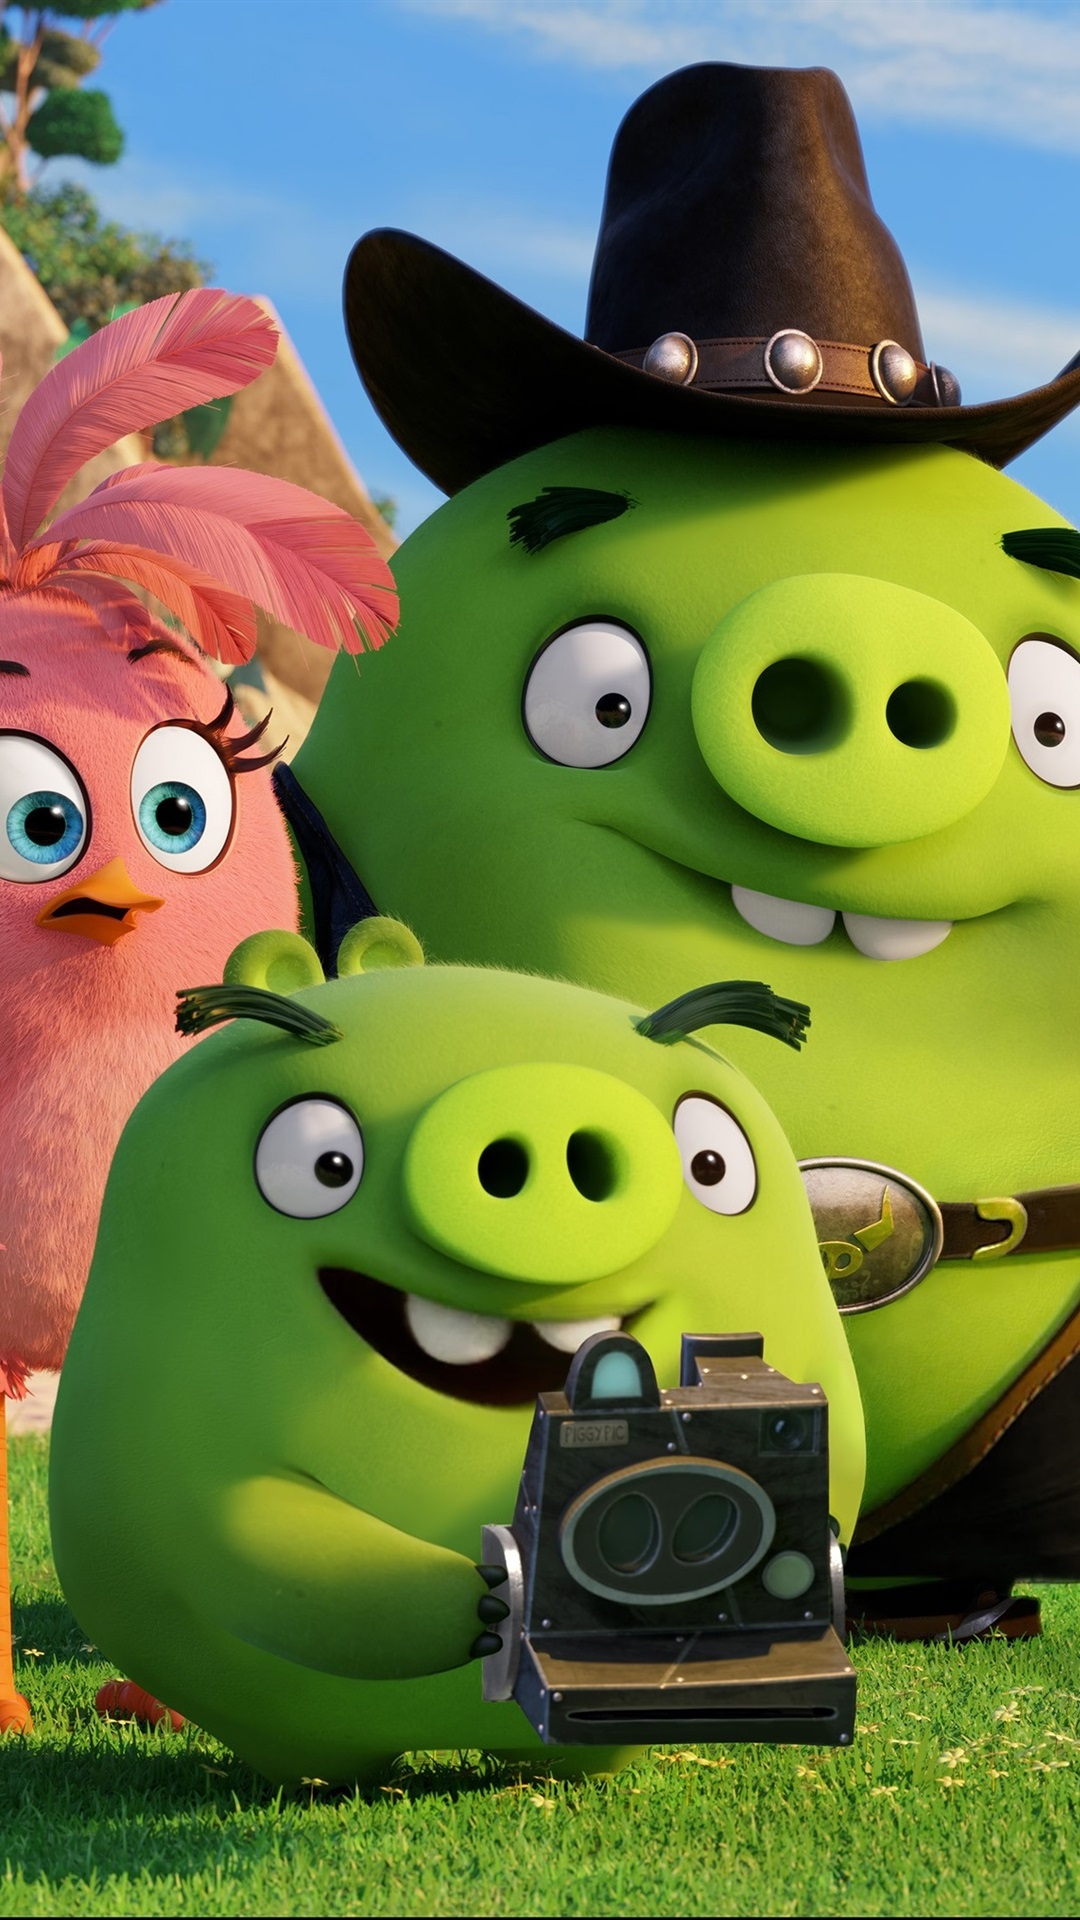 Green Pigs Angry Birds Movie 1080x1920 Iphone 8 7 6 6s Plus